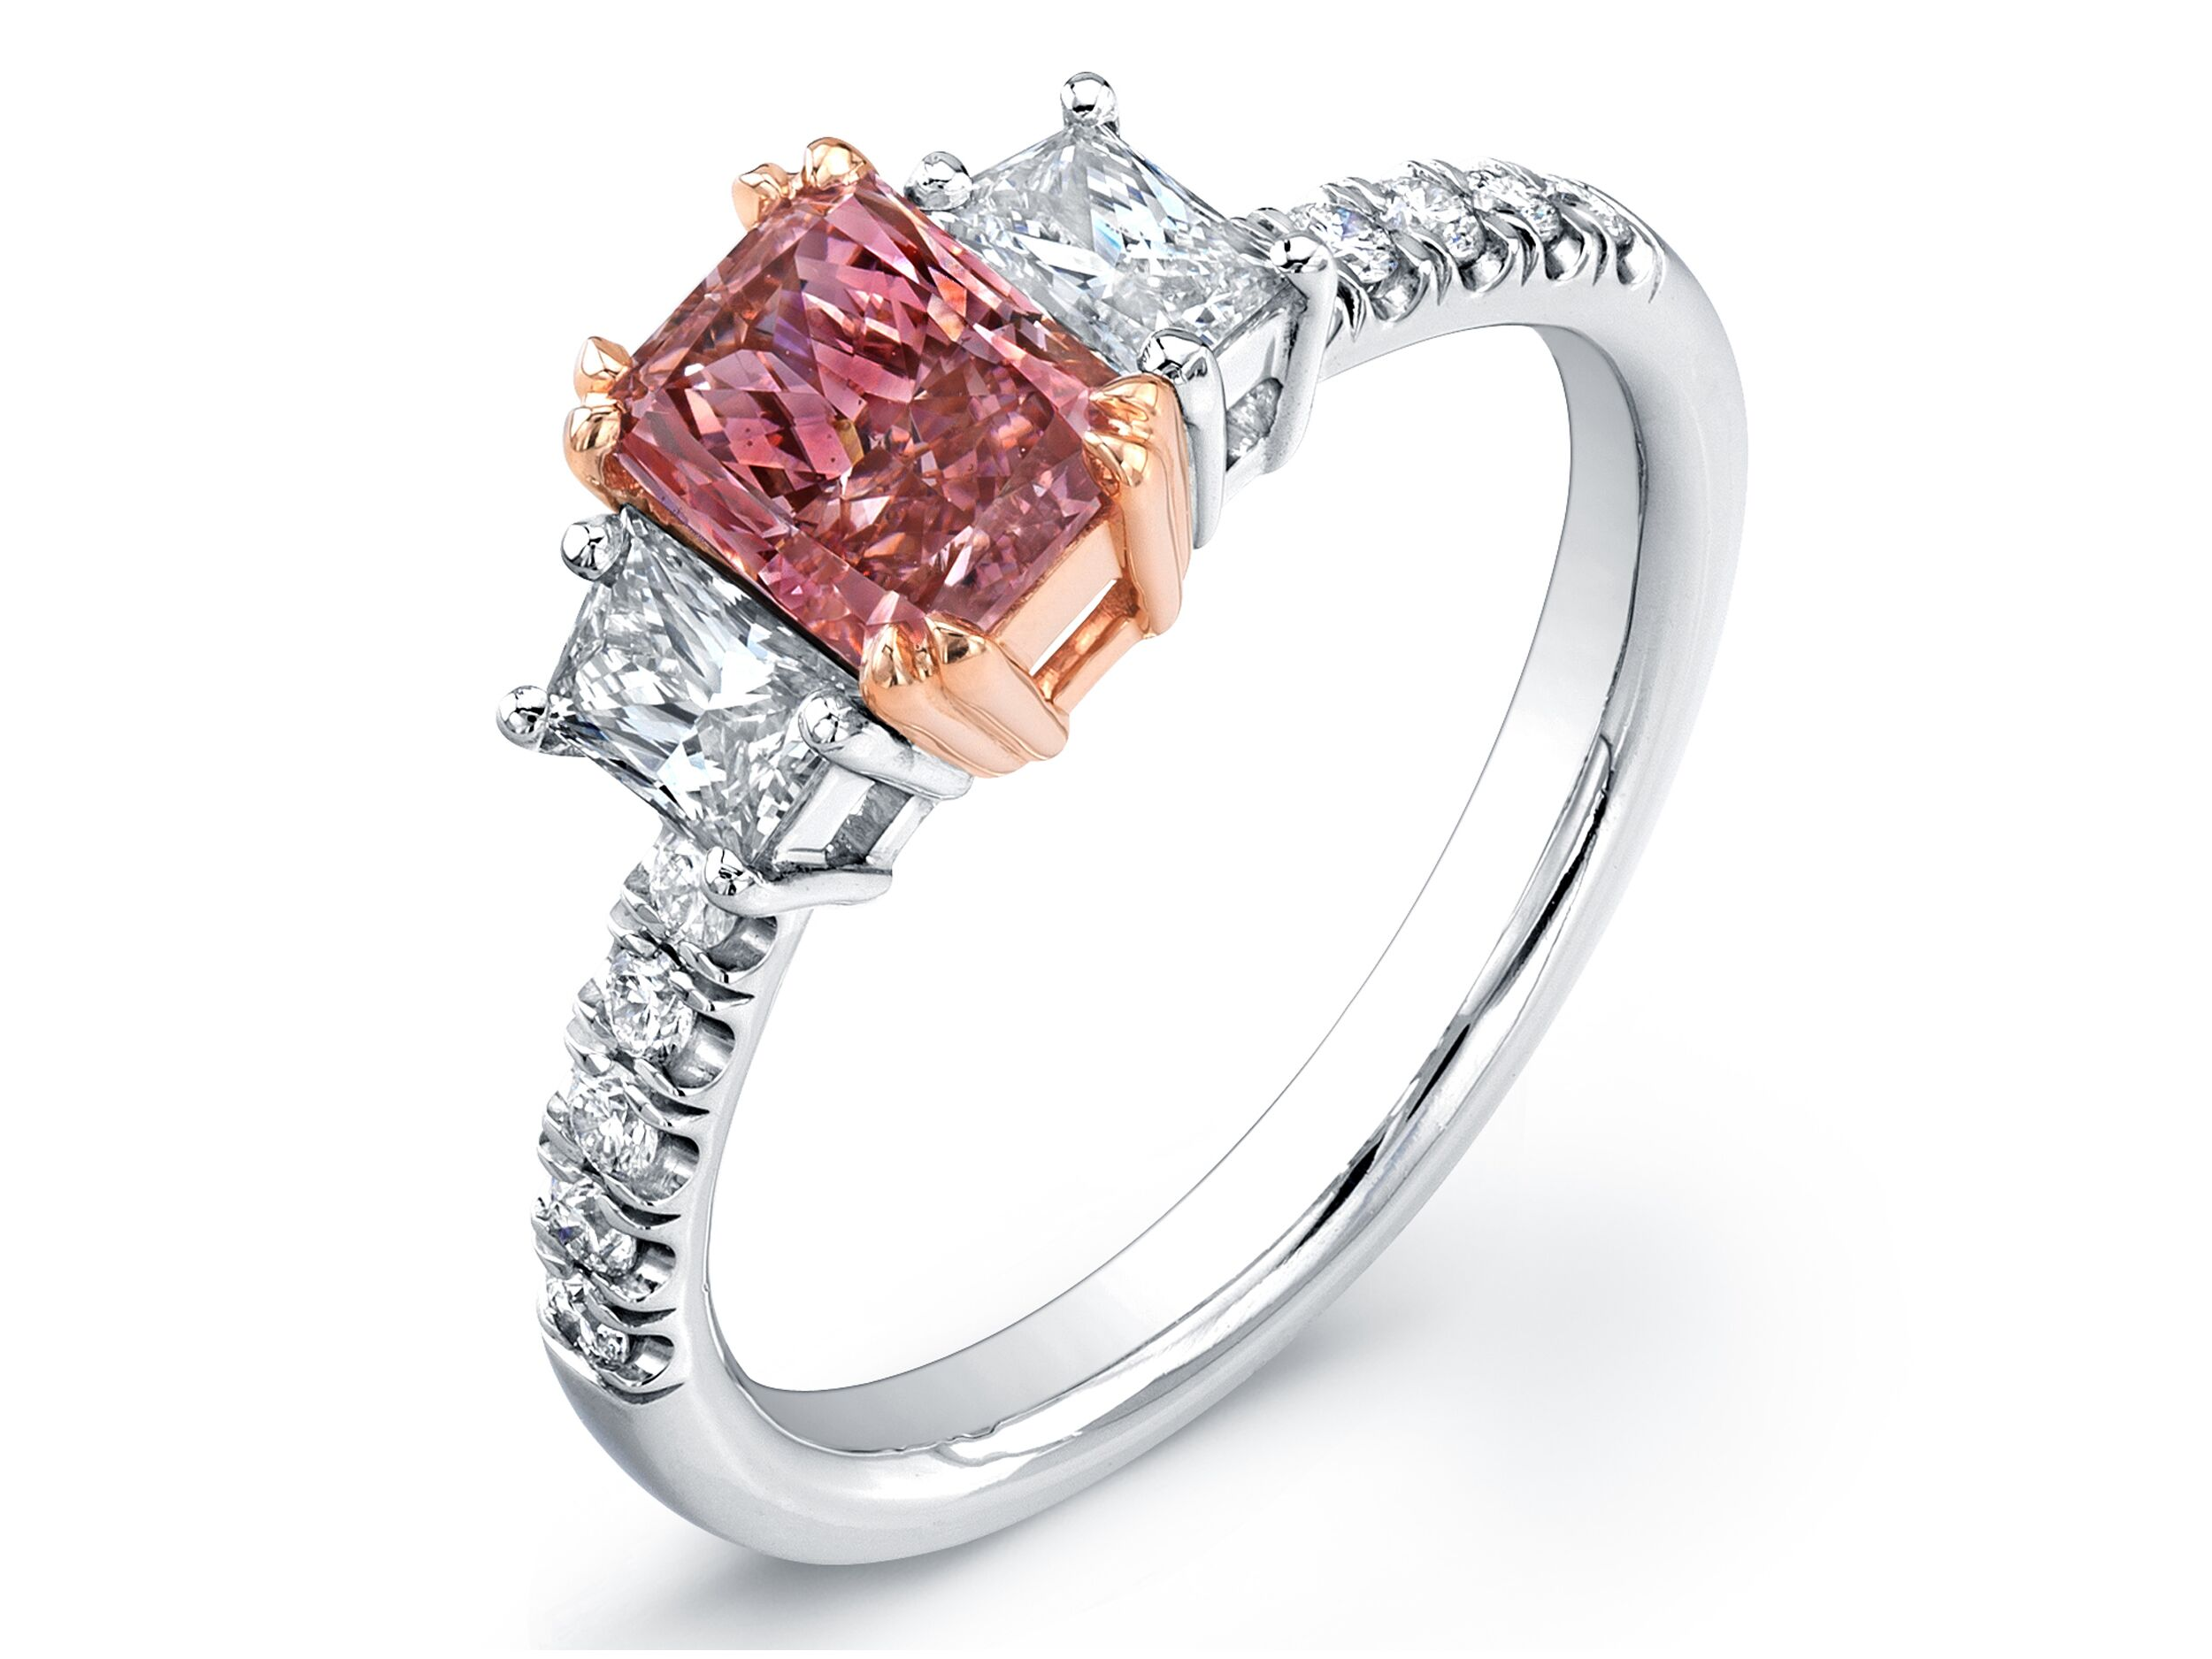 vian jewelry levian shop rings rhodolite diamond rose le gold engagement designer garnet chocolate cocktail ring